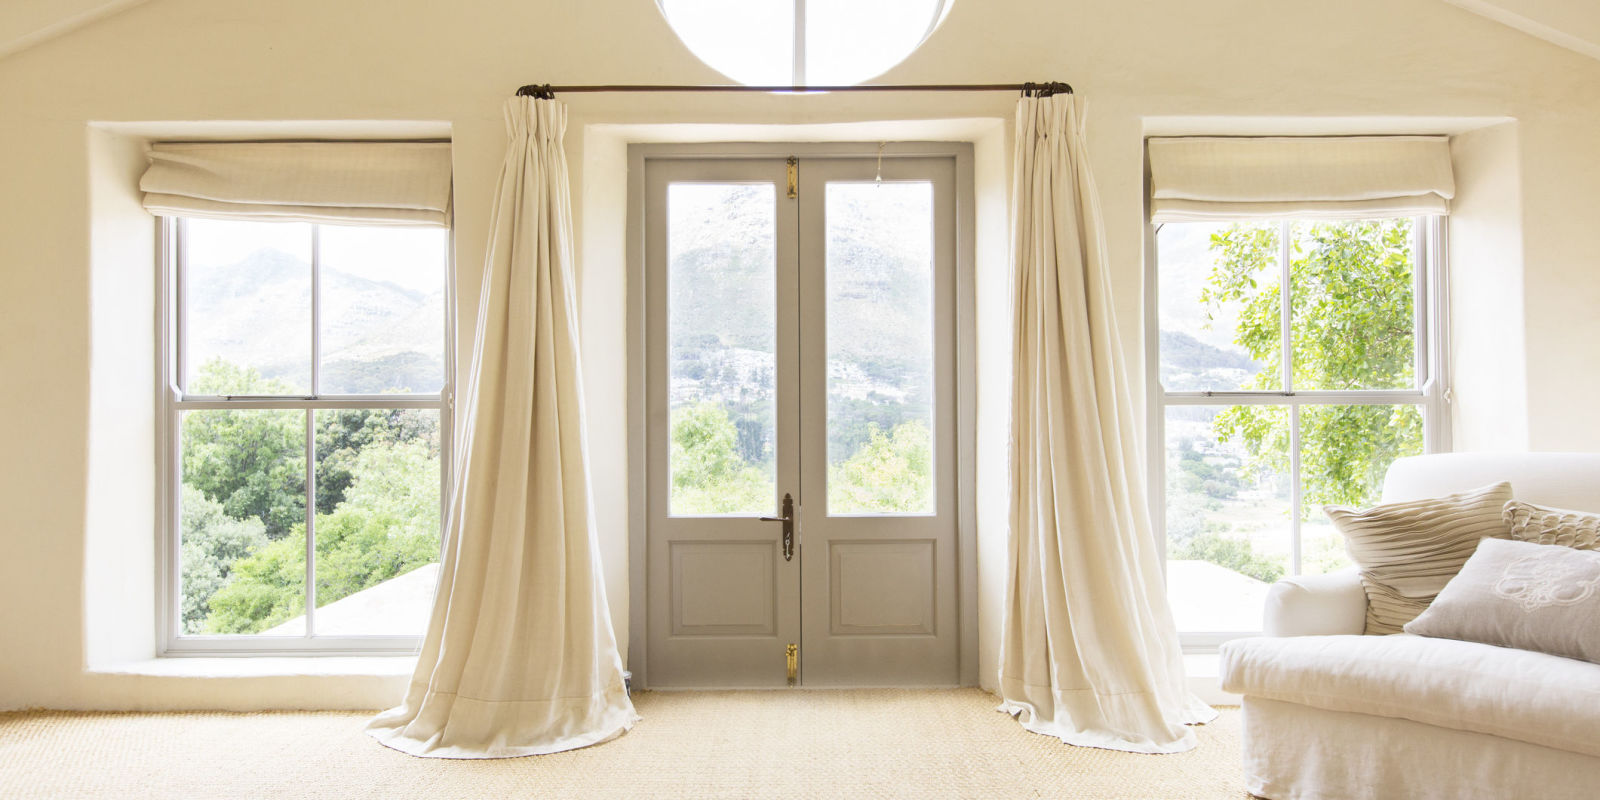 5 great alternative uses for curtains in the home for Window design 2018